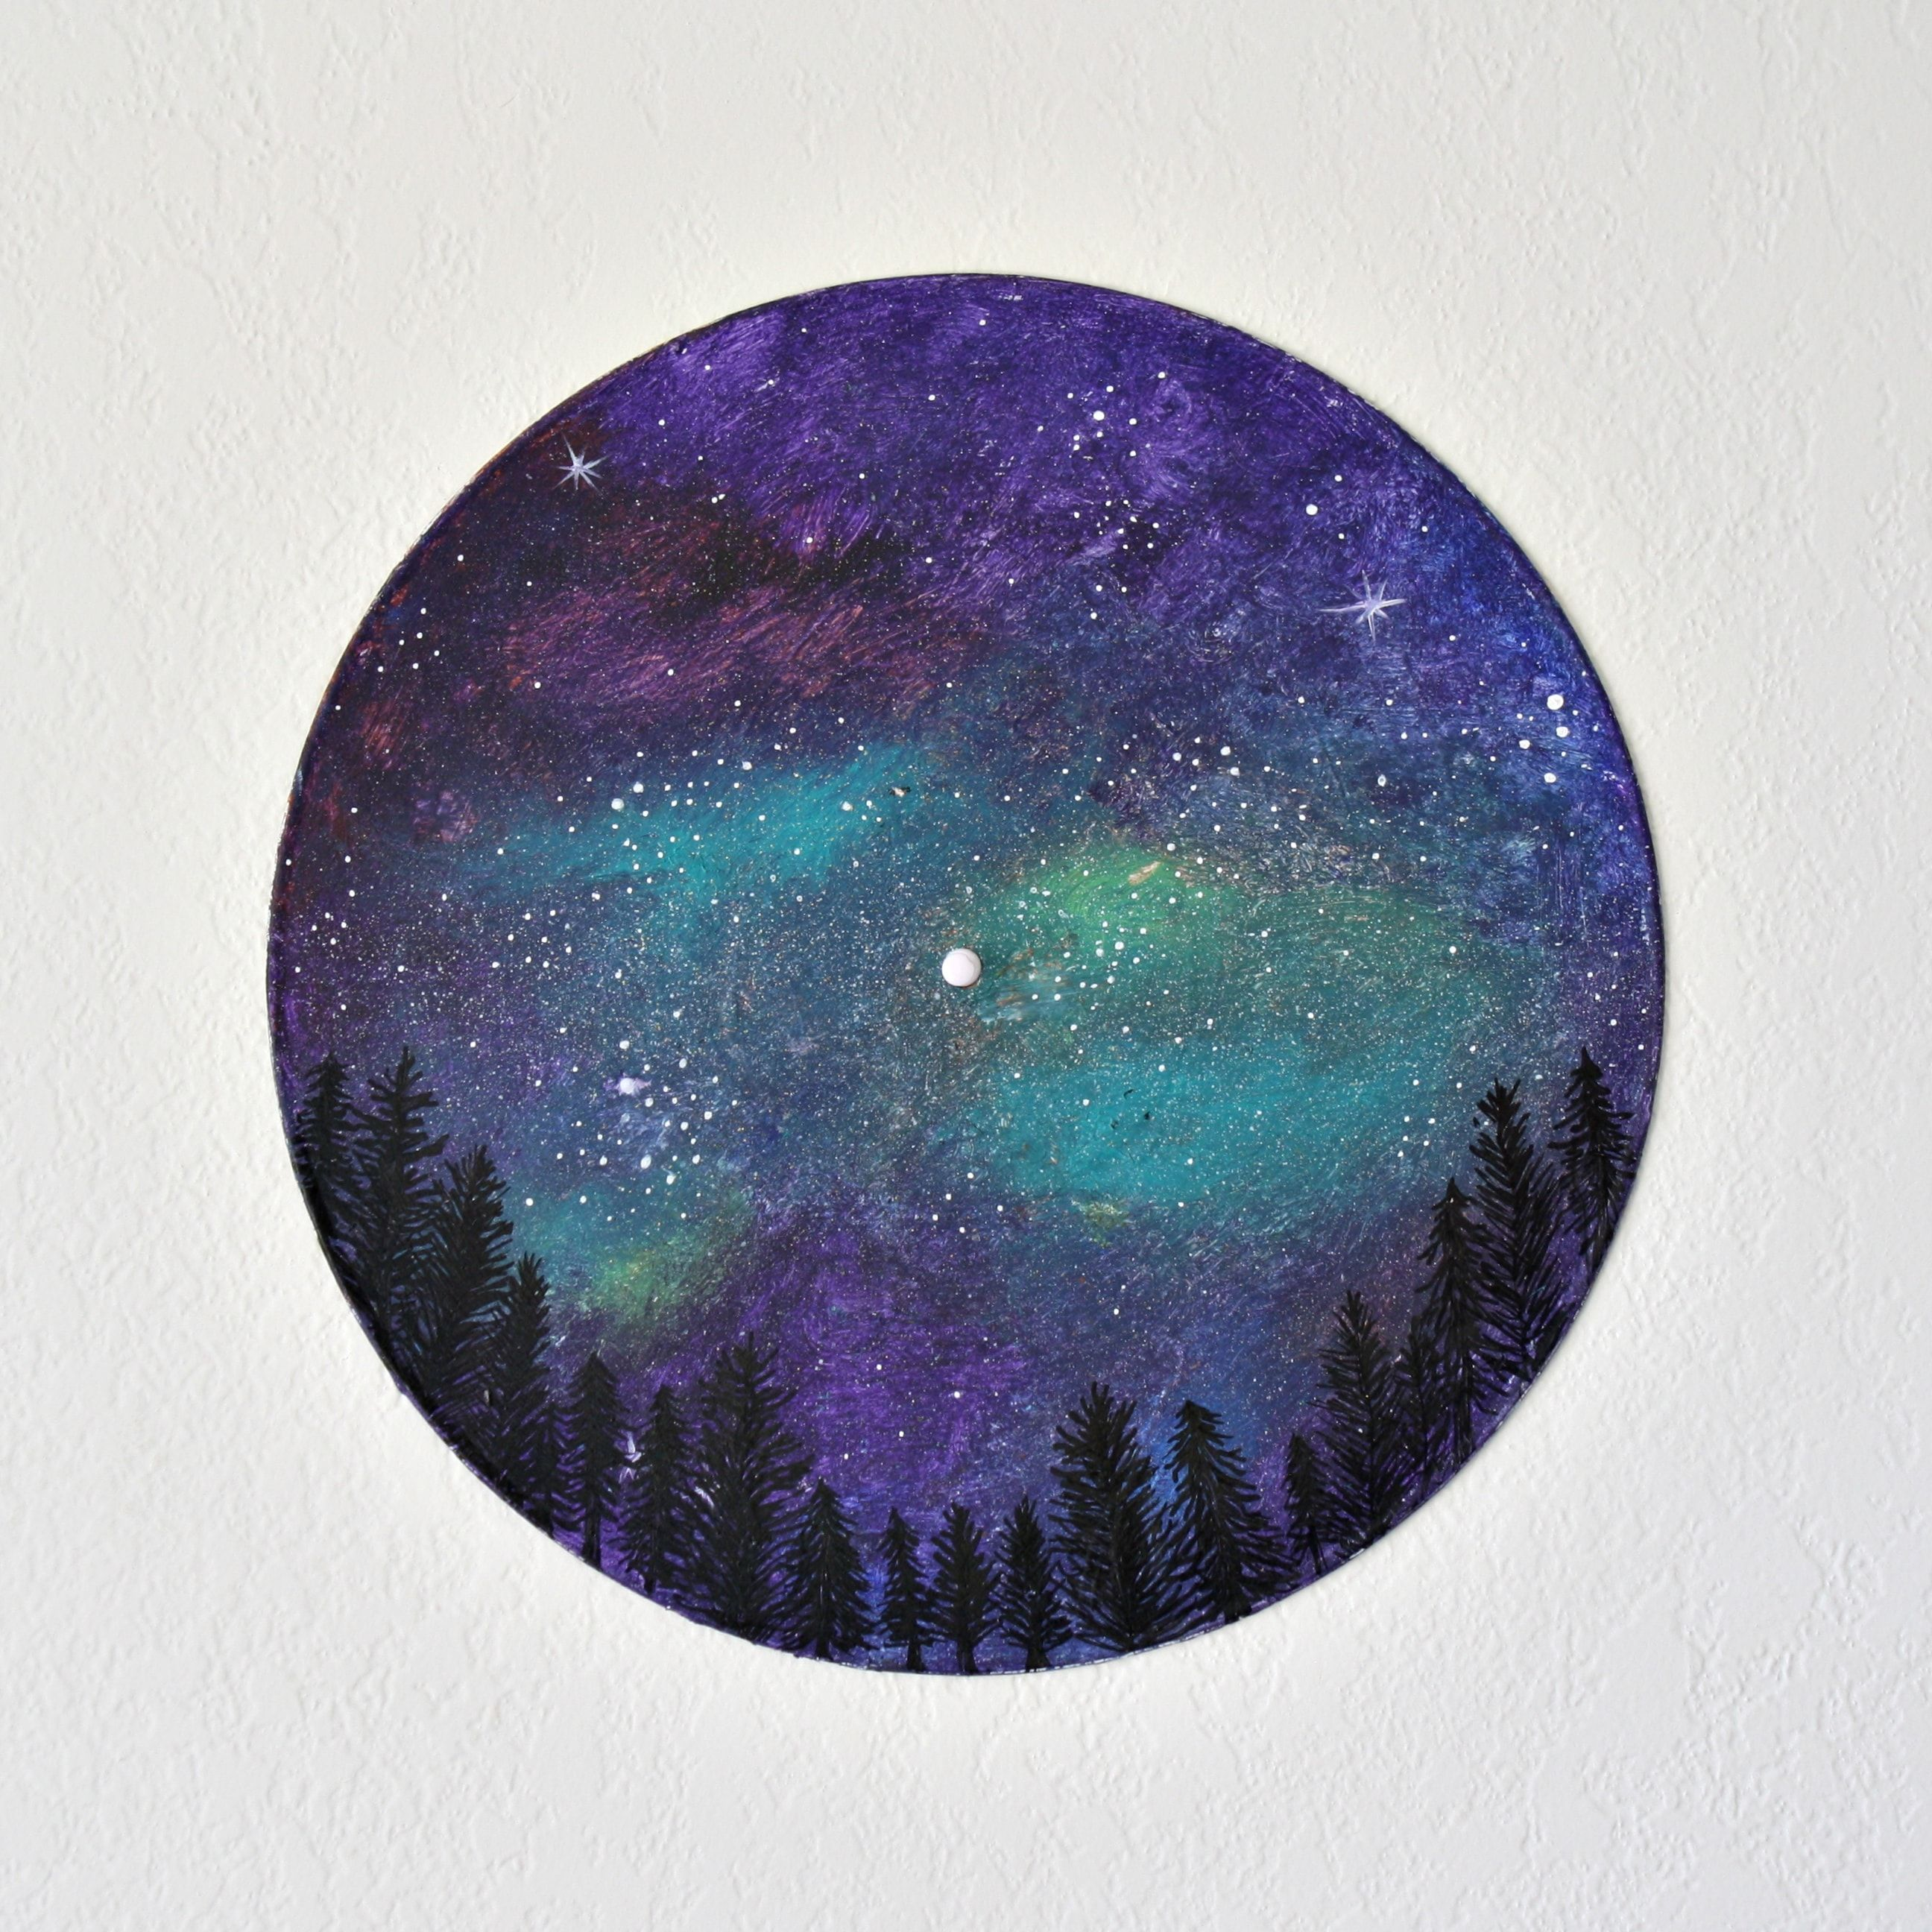 Starry Night Sky Above A Black Silhouetted Forest Painted On A Vinyl Record Inspired By Vancouver Island B C Canad Vinyl Record Art Night Sky Art Vinyl Art